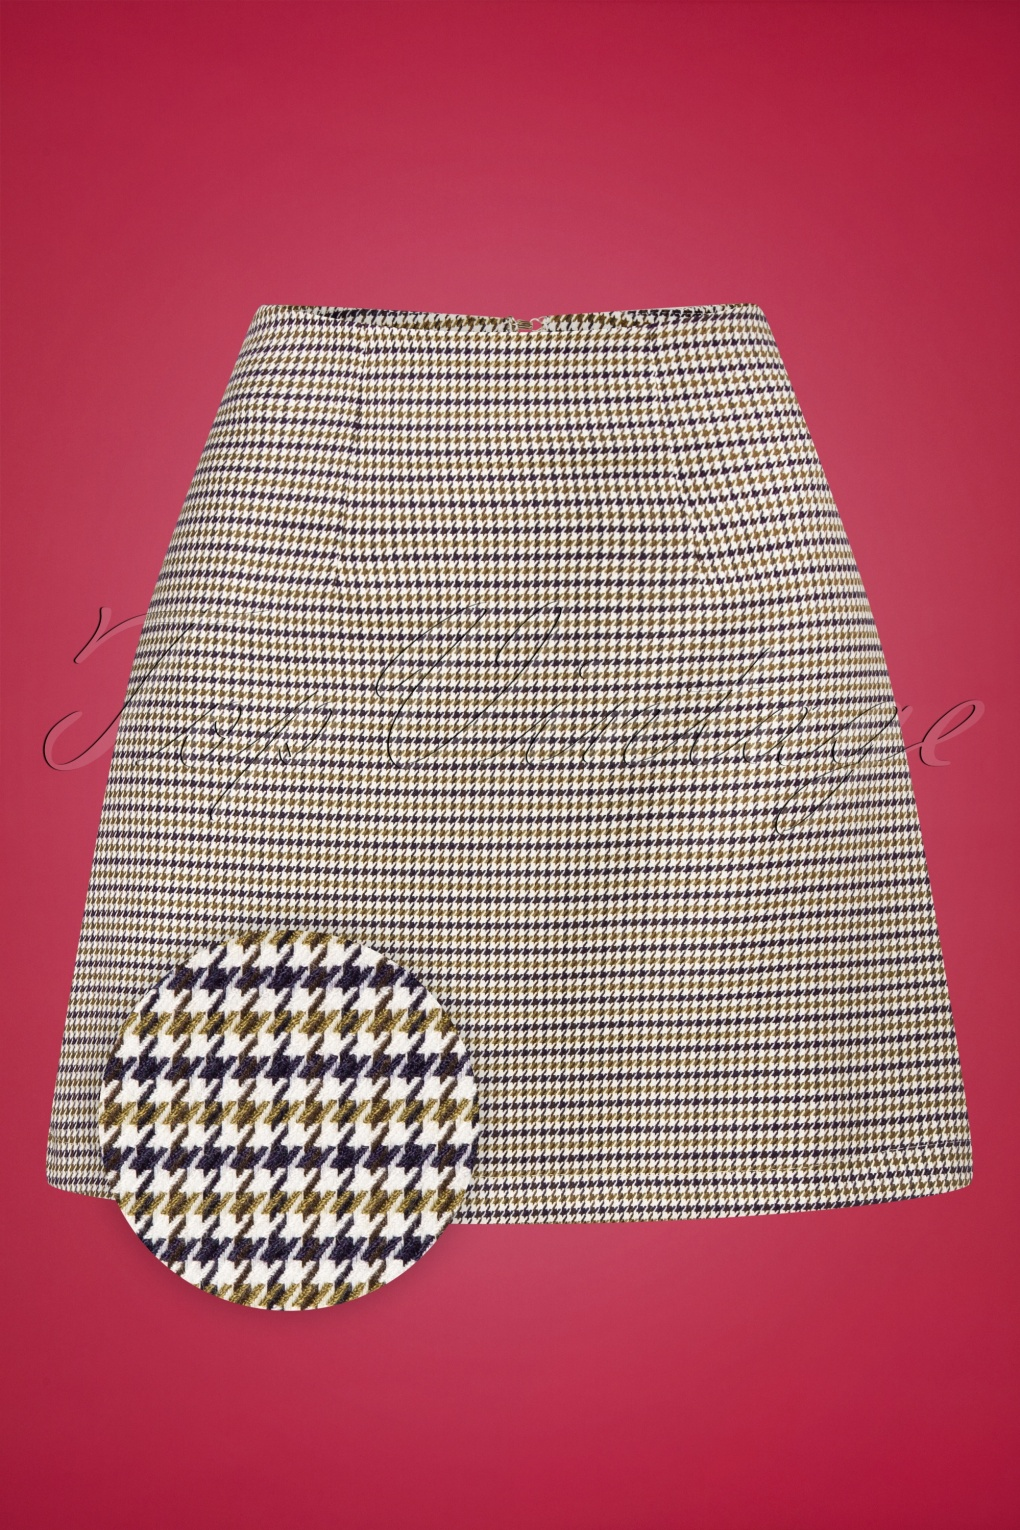 1960s Style Dresses, Clothing, Shoes UK 60s Check Mate Skirt in Green and Navy Houndstooth £36.92 AT vintagedancer.com